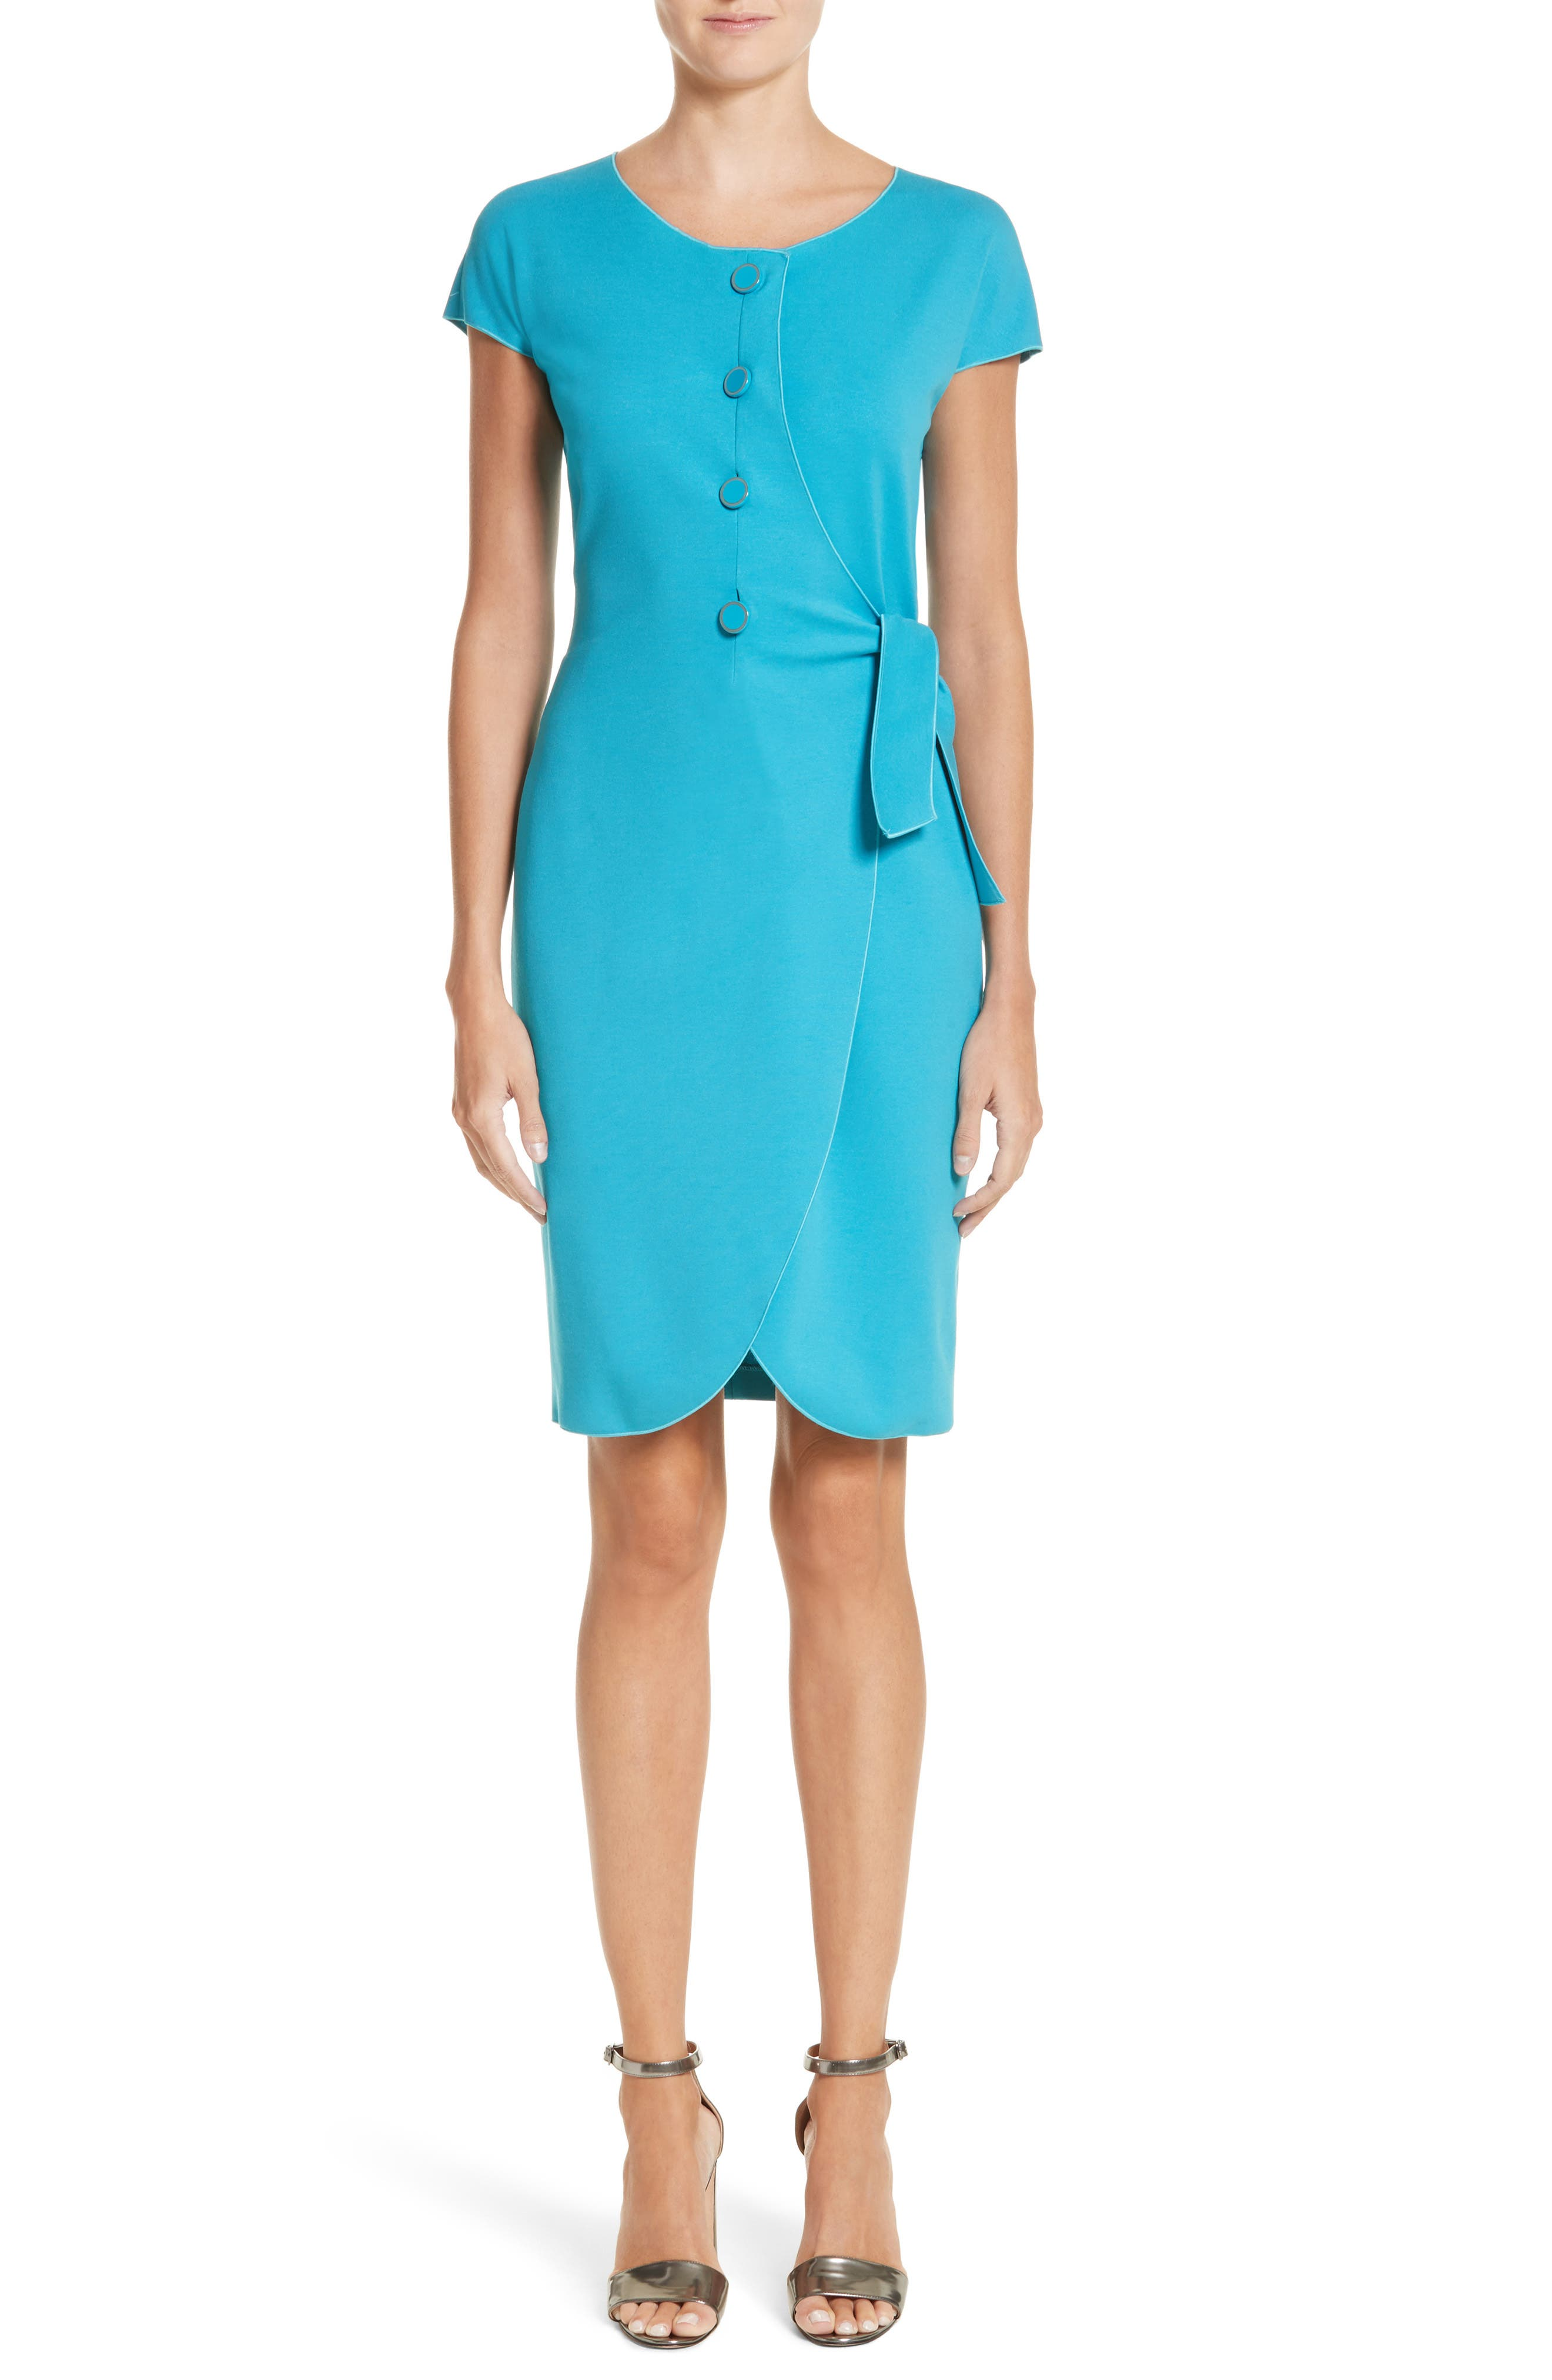 Knotted Wrap Skirt Dress,                         Main,                         color, Solid Turquoise/ Aqua